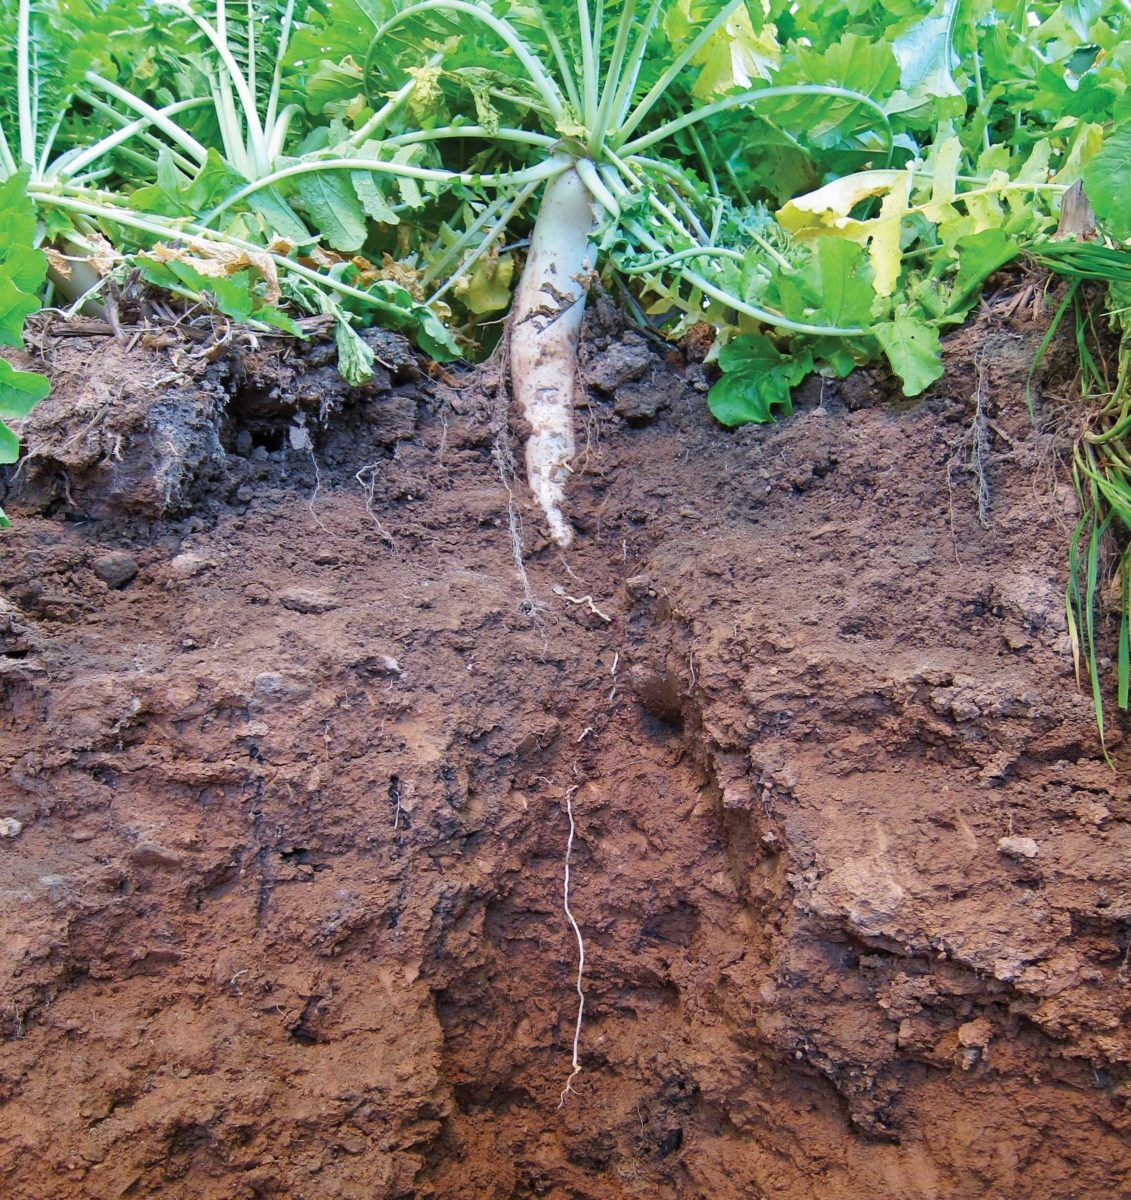 Soil profile showing a radish growing into the ground